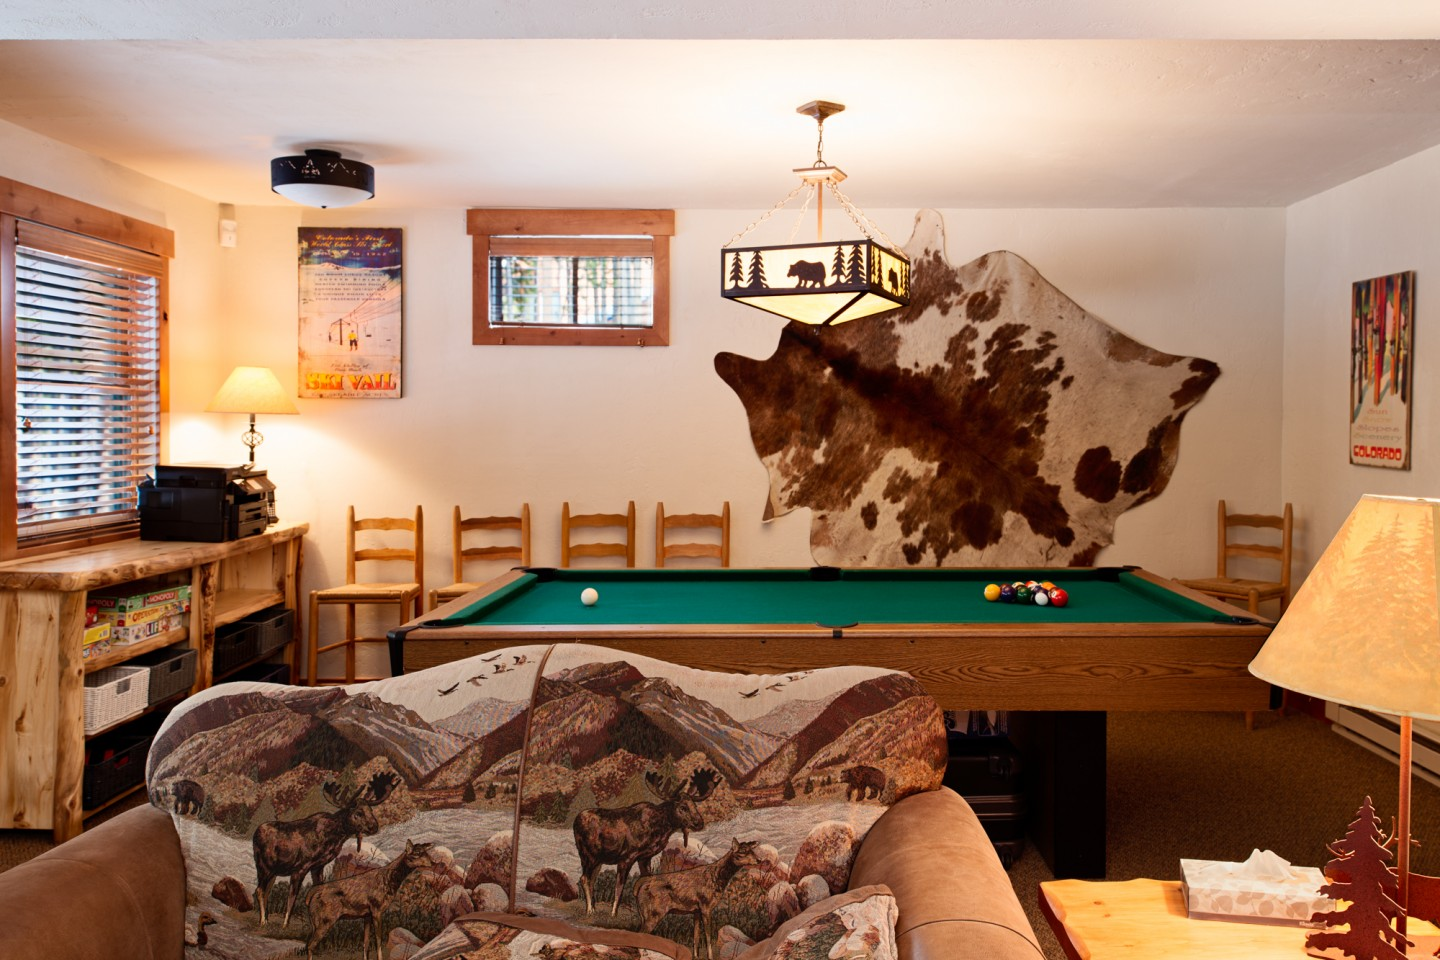 ... play pool or choose from a selection of board or Wii games